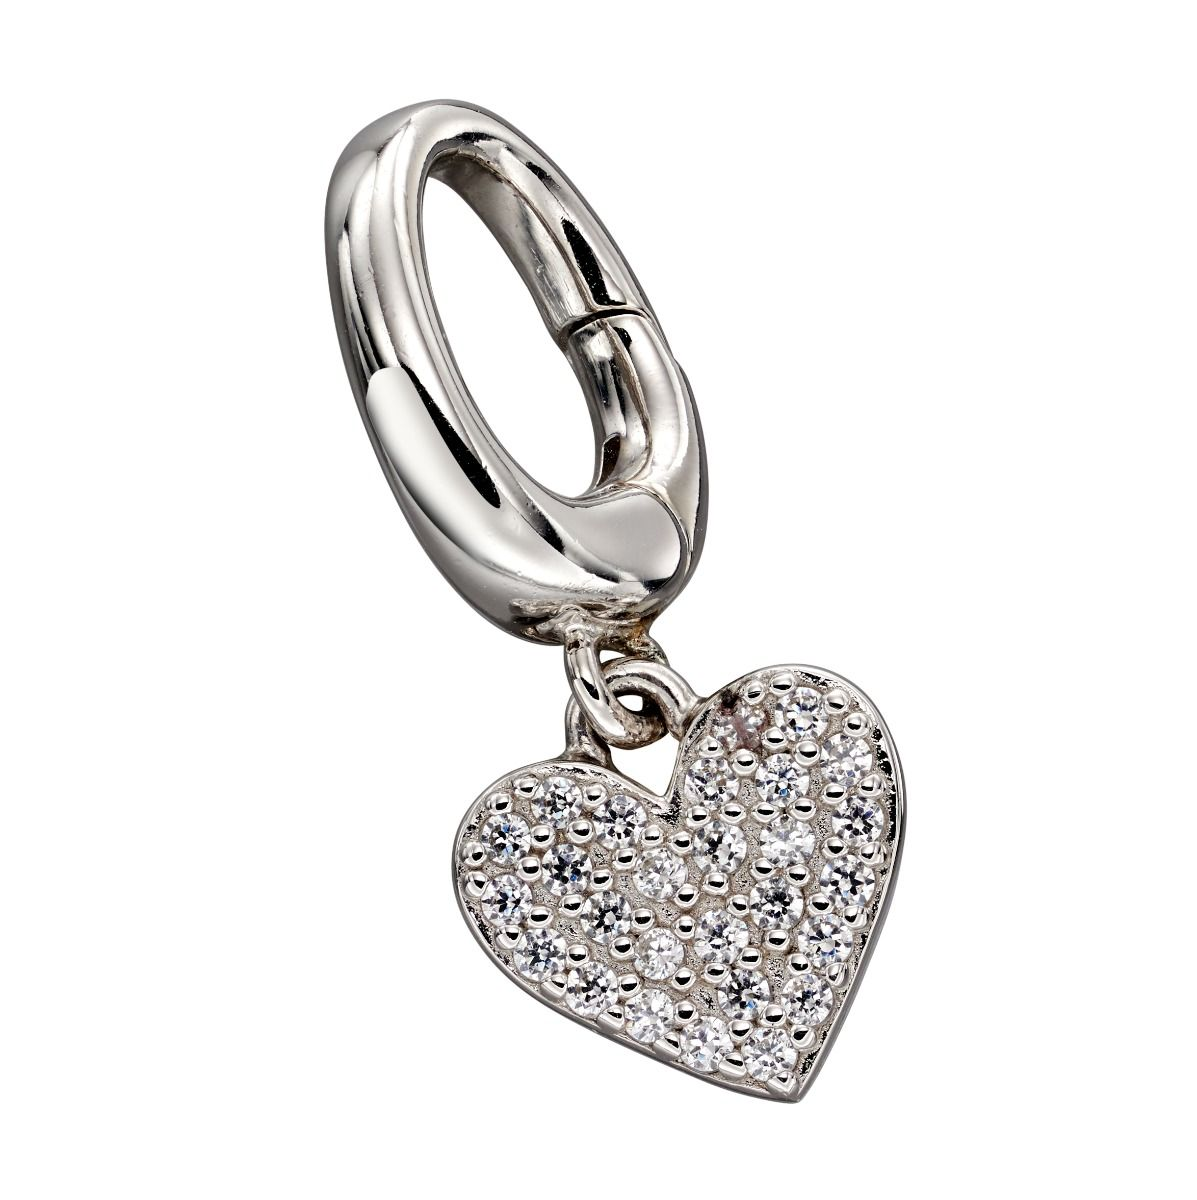 Fiorelli Silver Womens 925 Sterling Silver Pave Cubic Zirconia Heart Spring Catch Charm